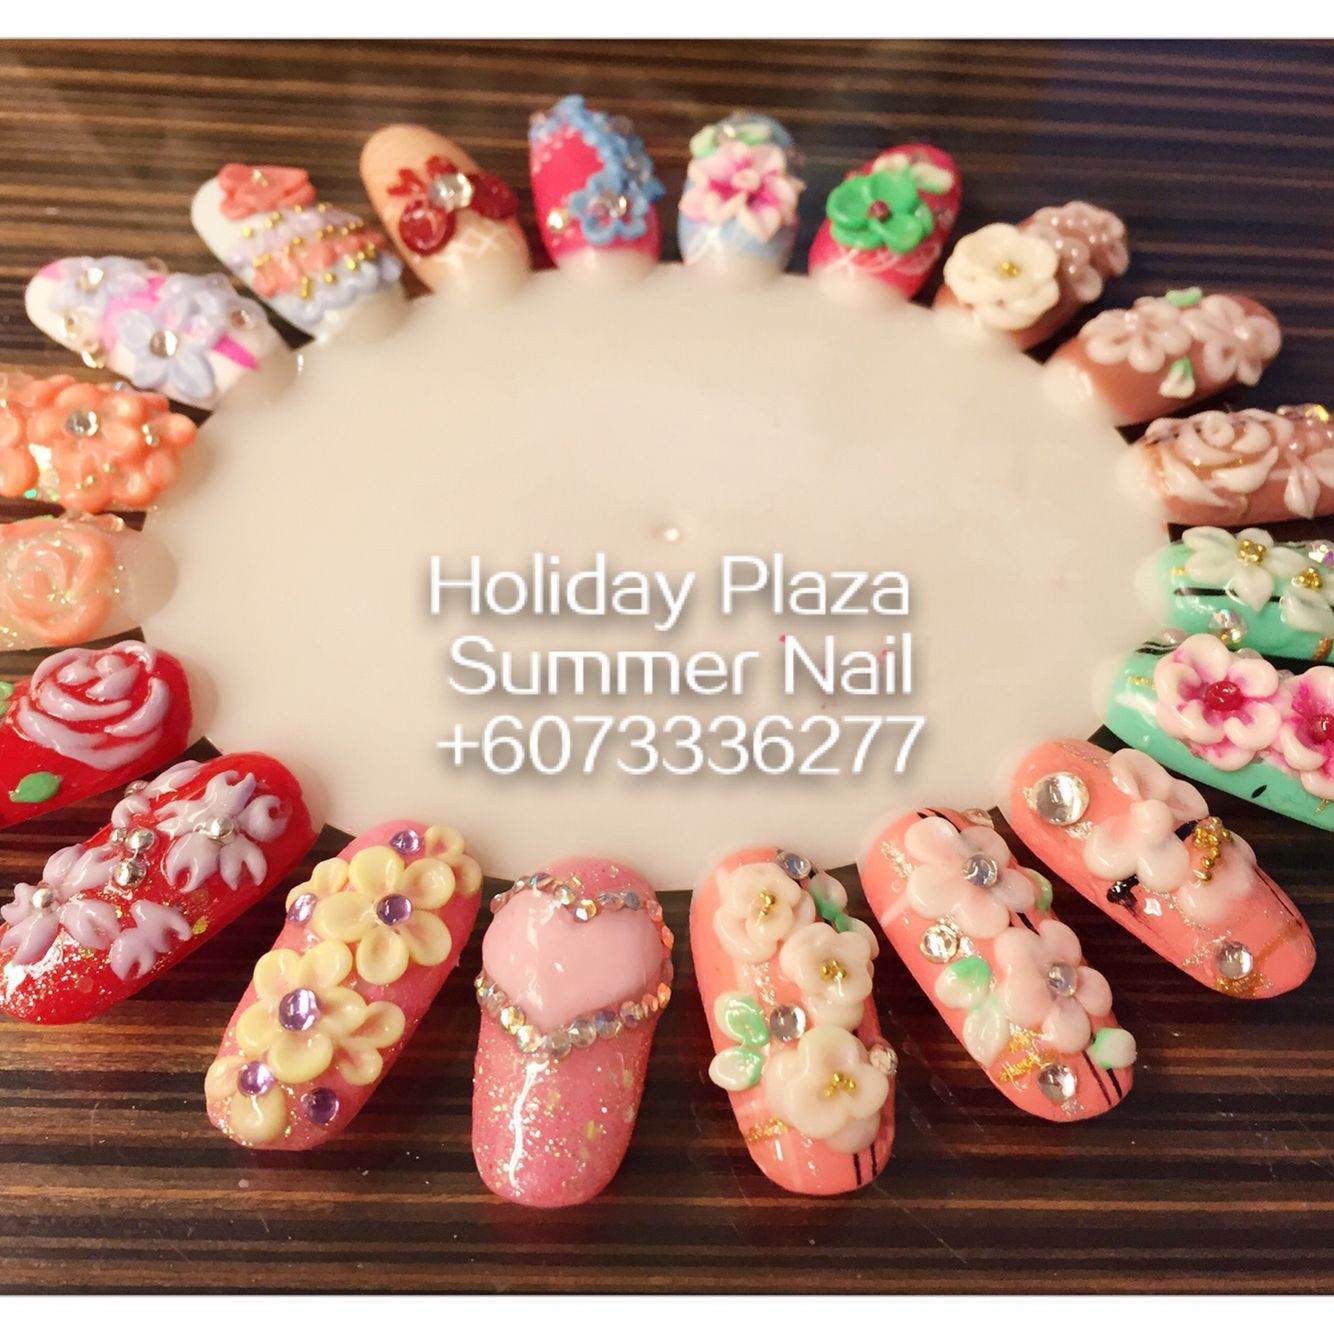 3D nail art design sample . Summer Nail, Holiday Plaza (McDonald's upstairs 3rd floor)  ☎️+6073336277 WhatsApp +60127242222 Instagram summernail_hp FaceBook Summer Nail Professional Nail Care